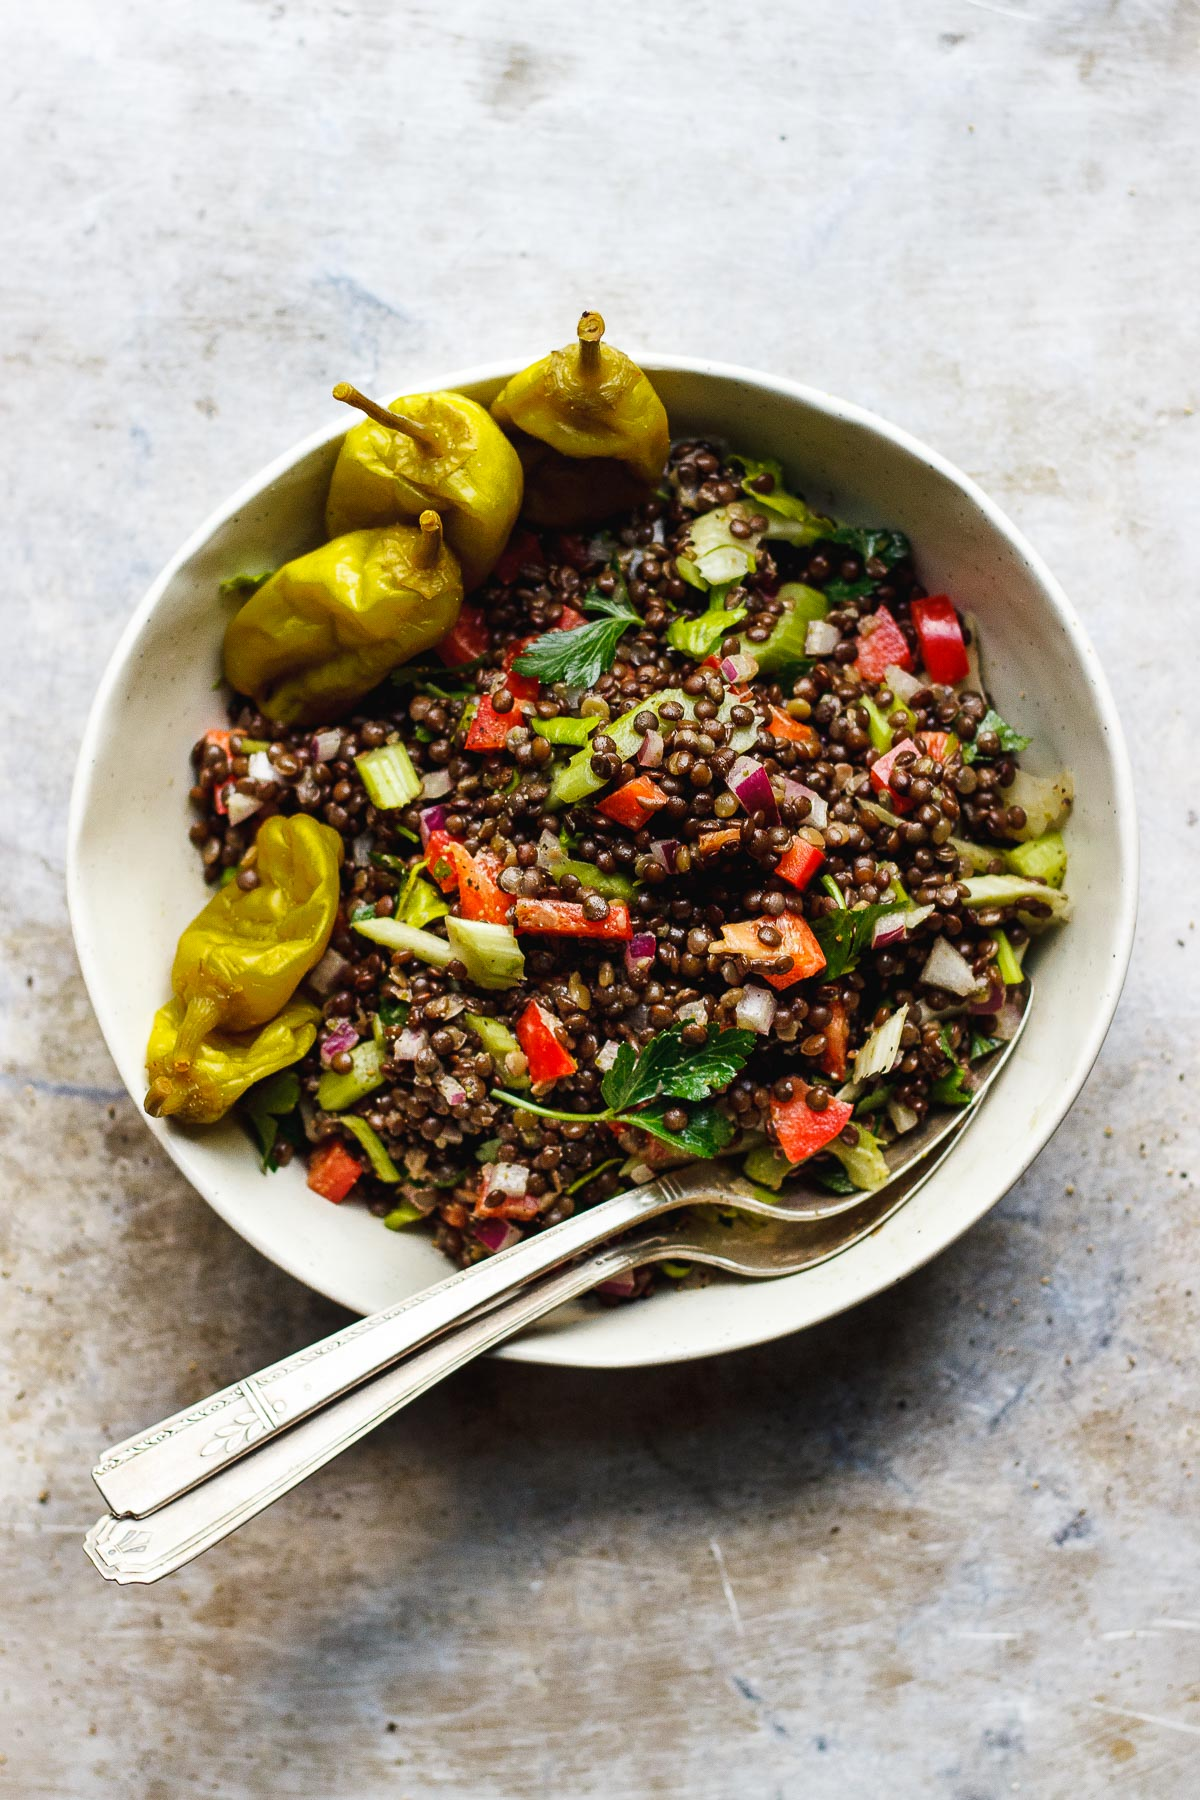 CRUNCHY LENTIL SALAD WITH PEPPERONCINI DRESSING